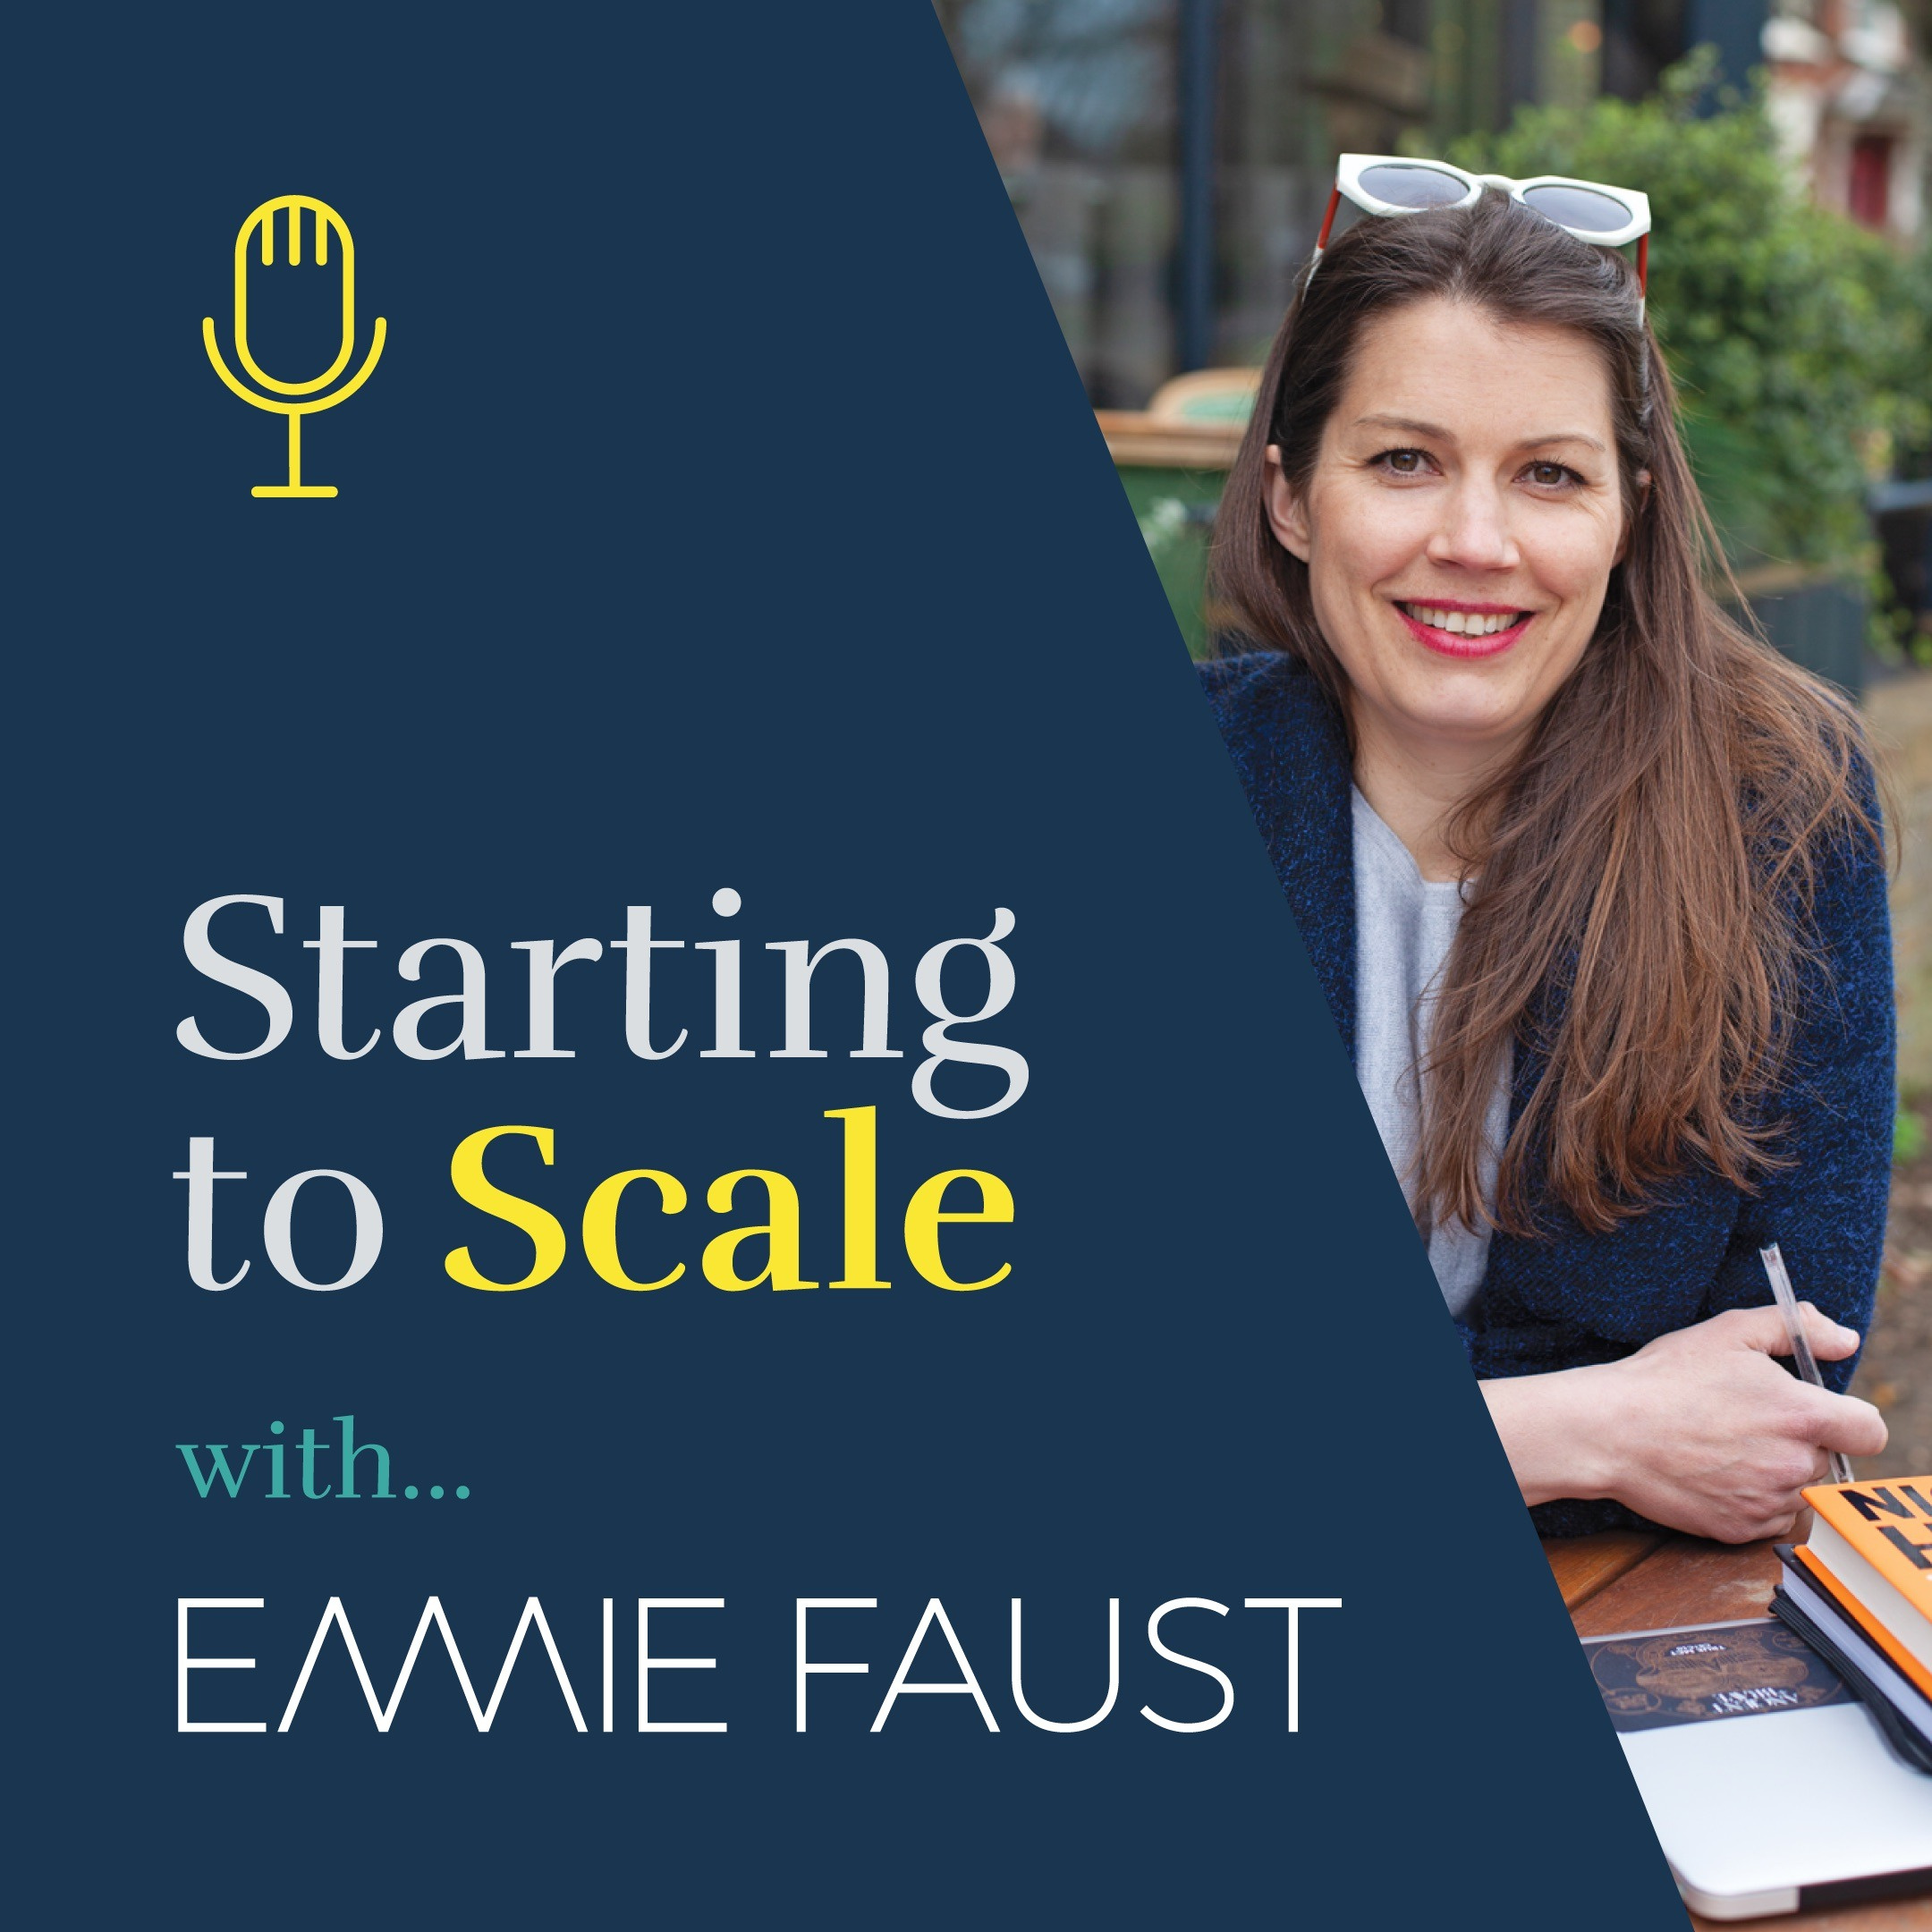 Starting to Scale with Emmie Faust